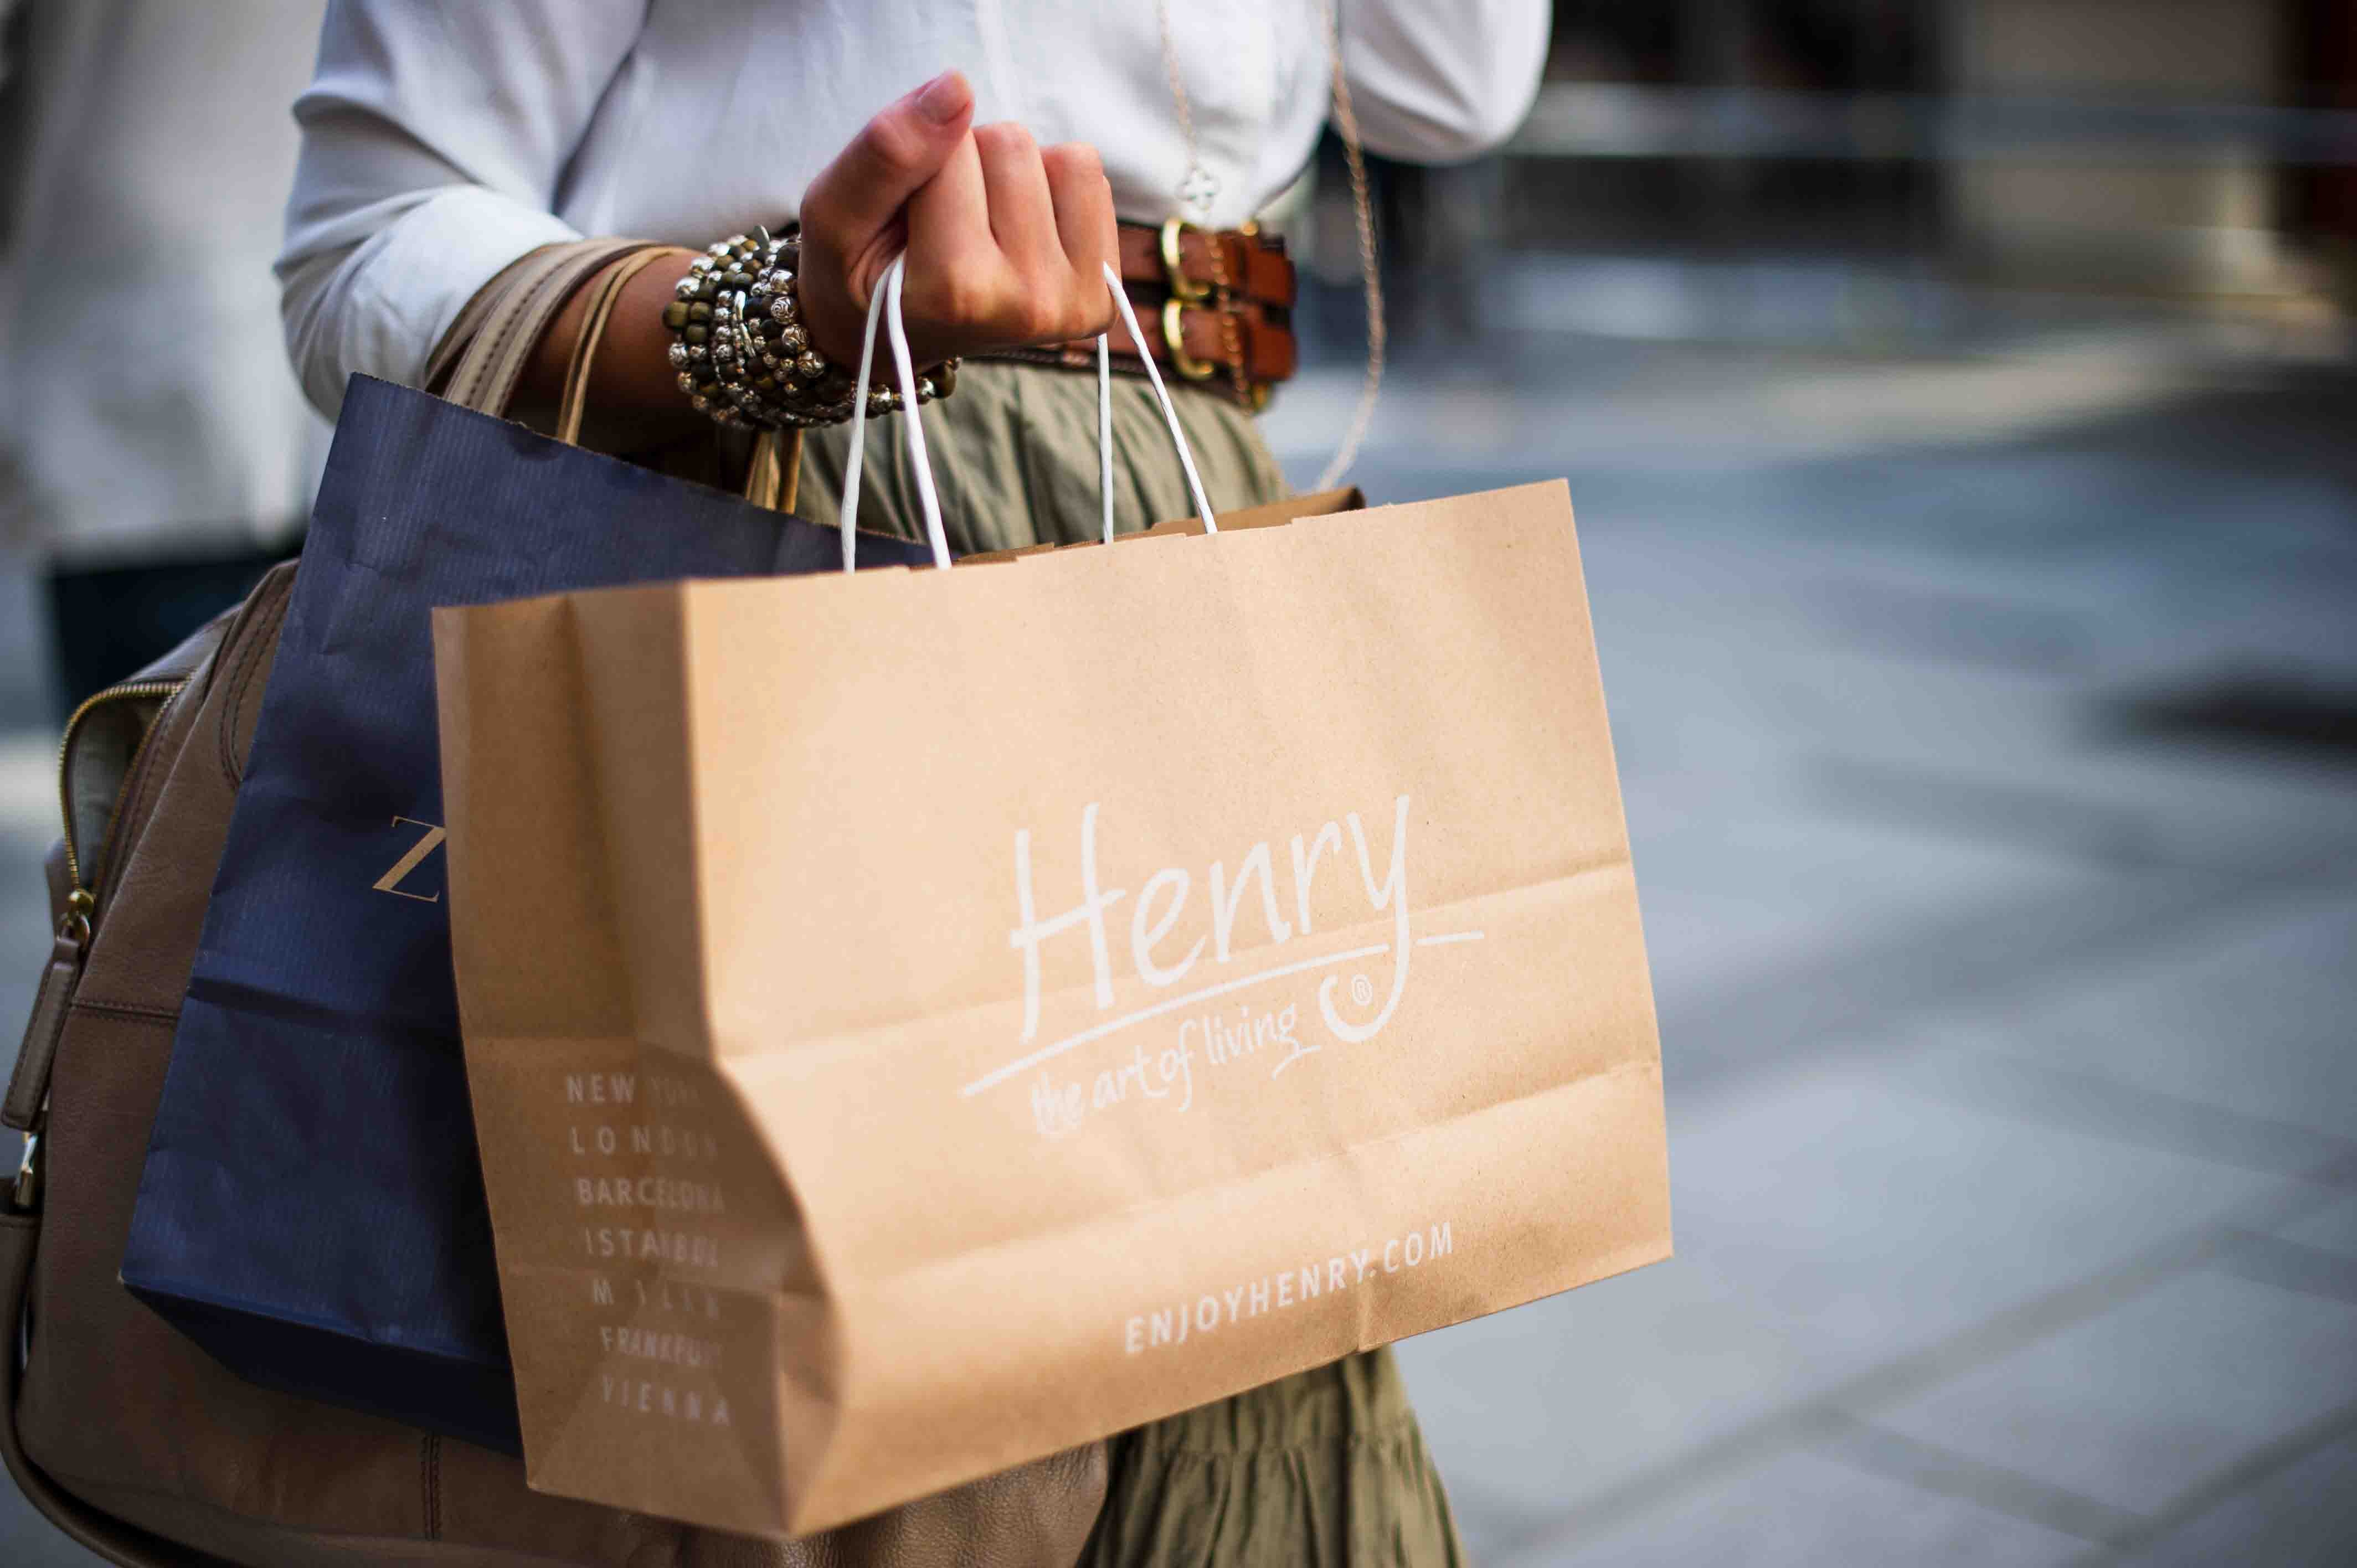 Shopping bags of a woman